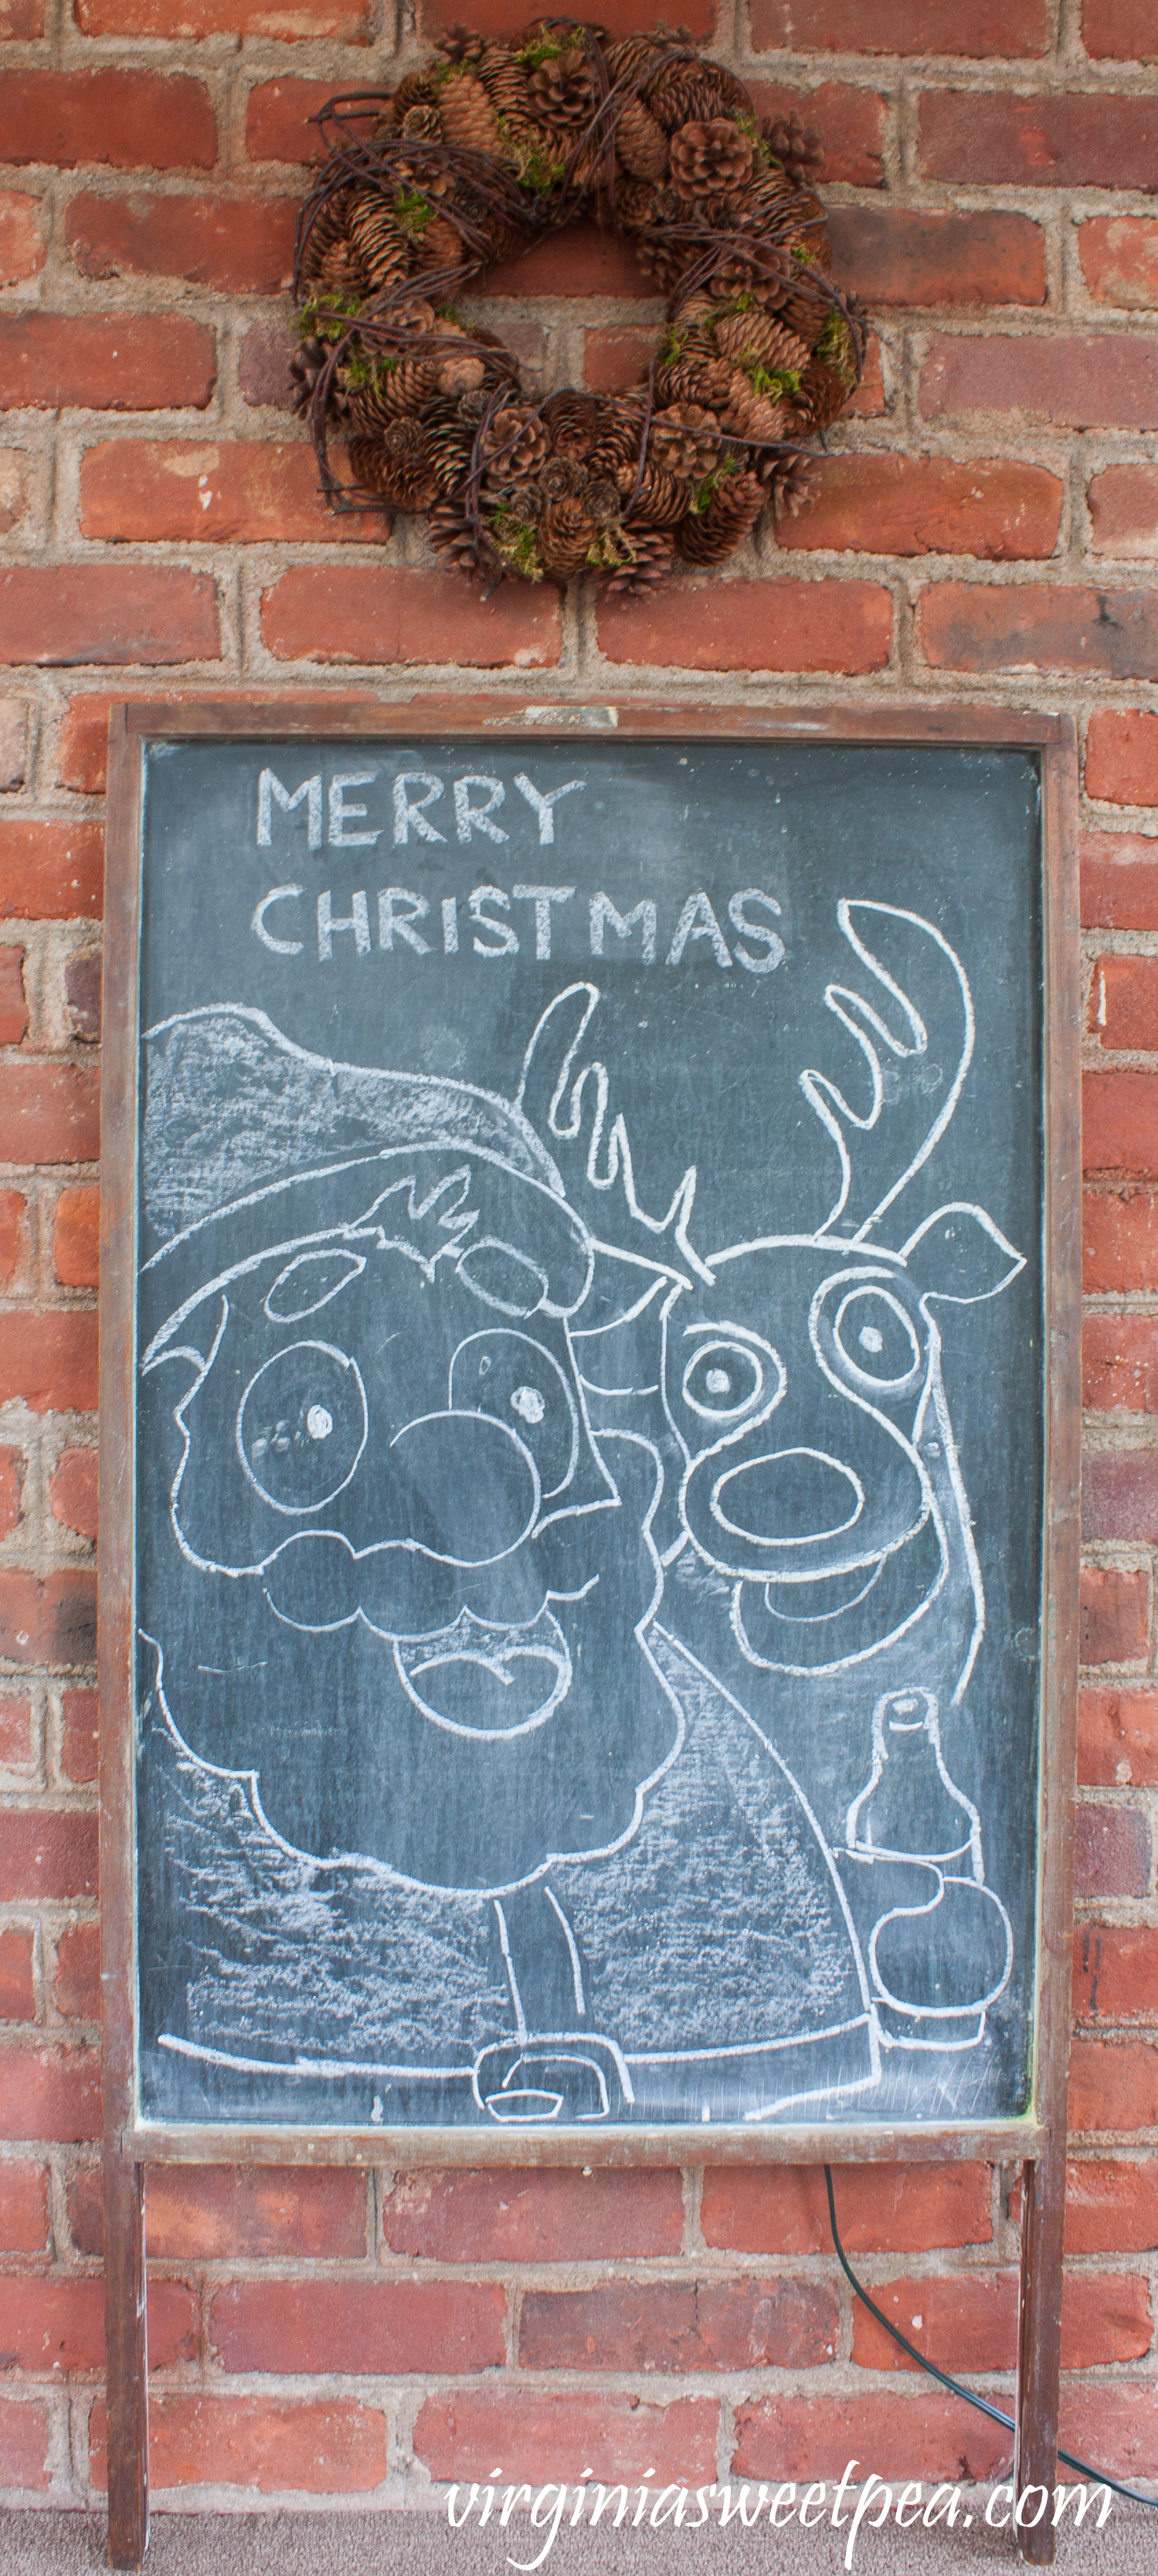 Chalk art featuring Santa enjoying a cold one with Rudolph on an antique chalkboard. #chalkart #christmaschalkart #vintage #christmas